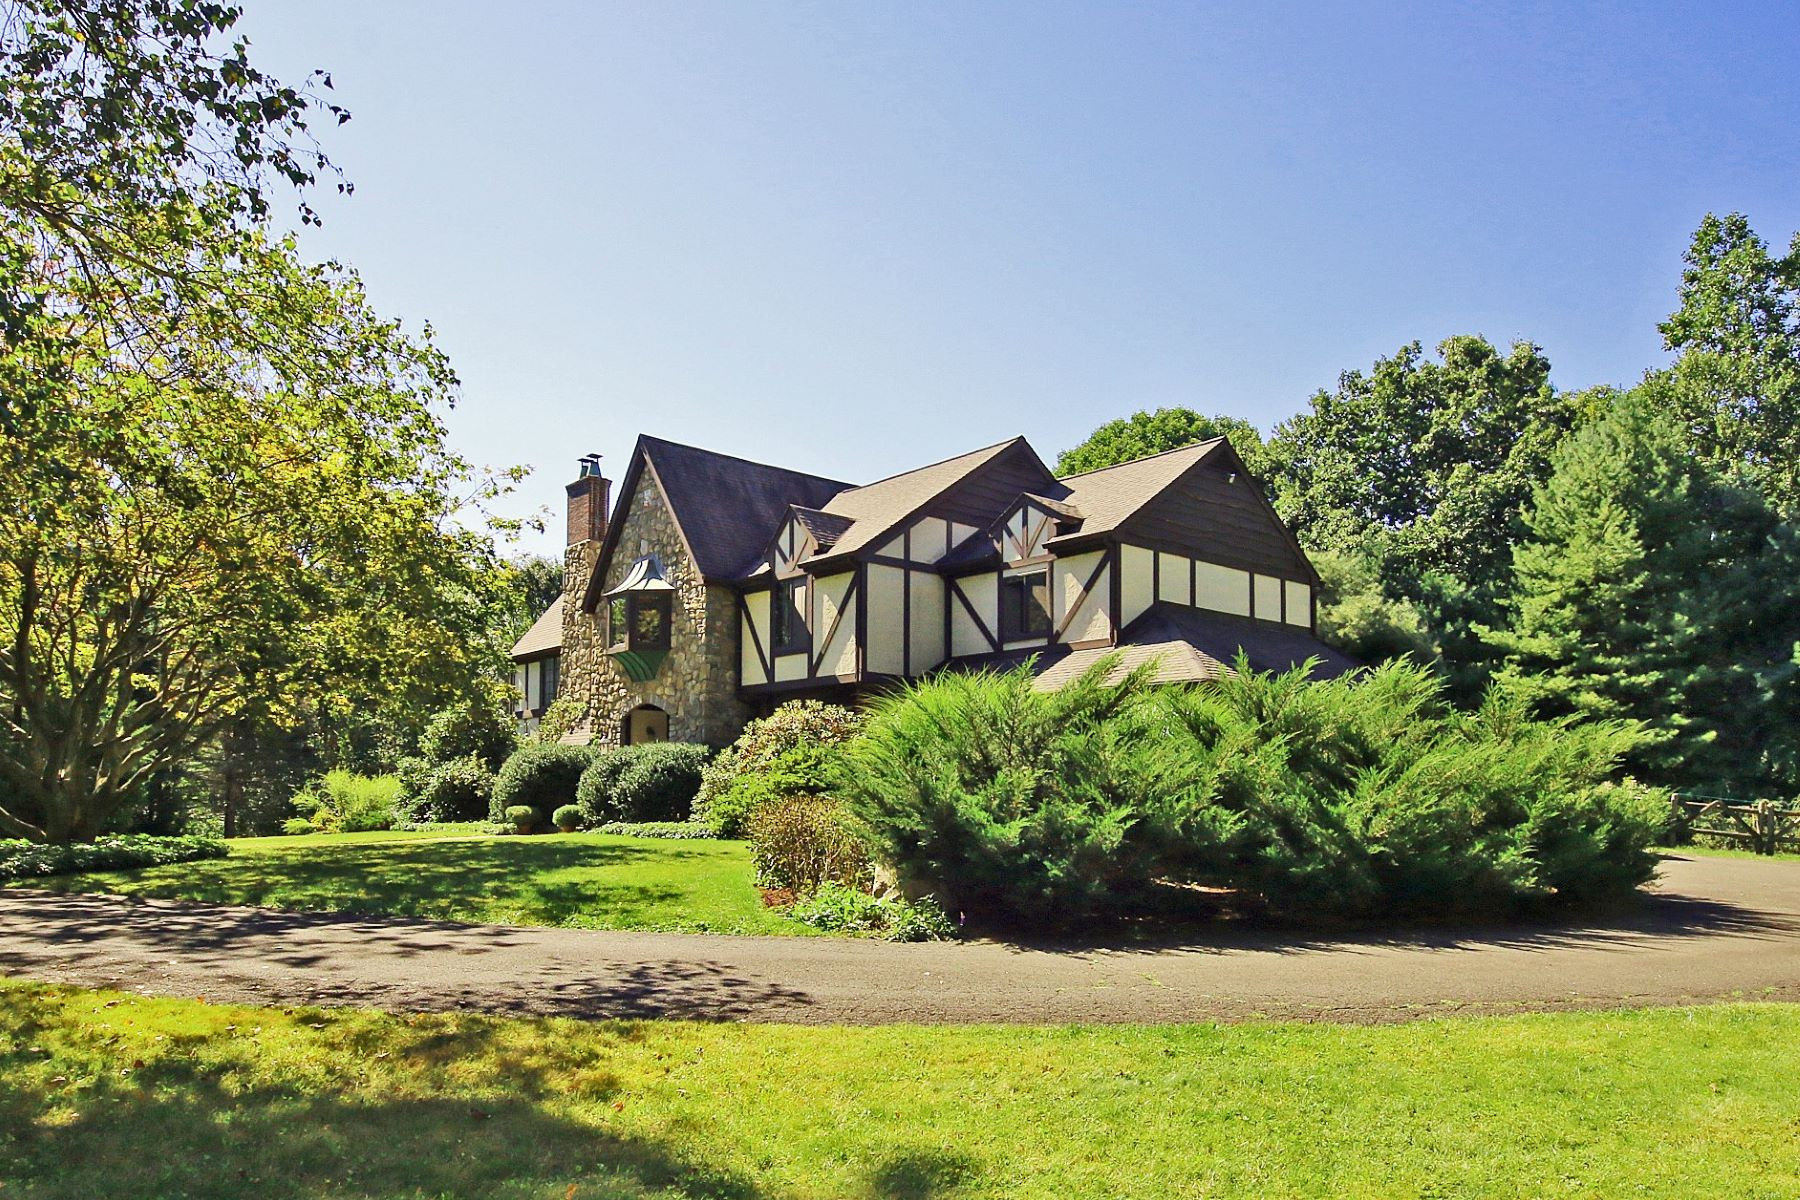 House for Sale at Stately English Stone Tudor 15 Tunxis Trail Redding, Connecticut 06896 United States